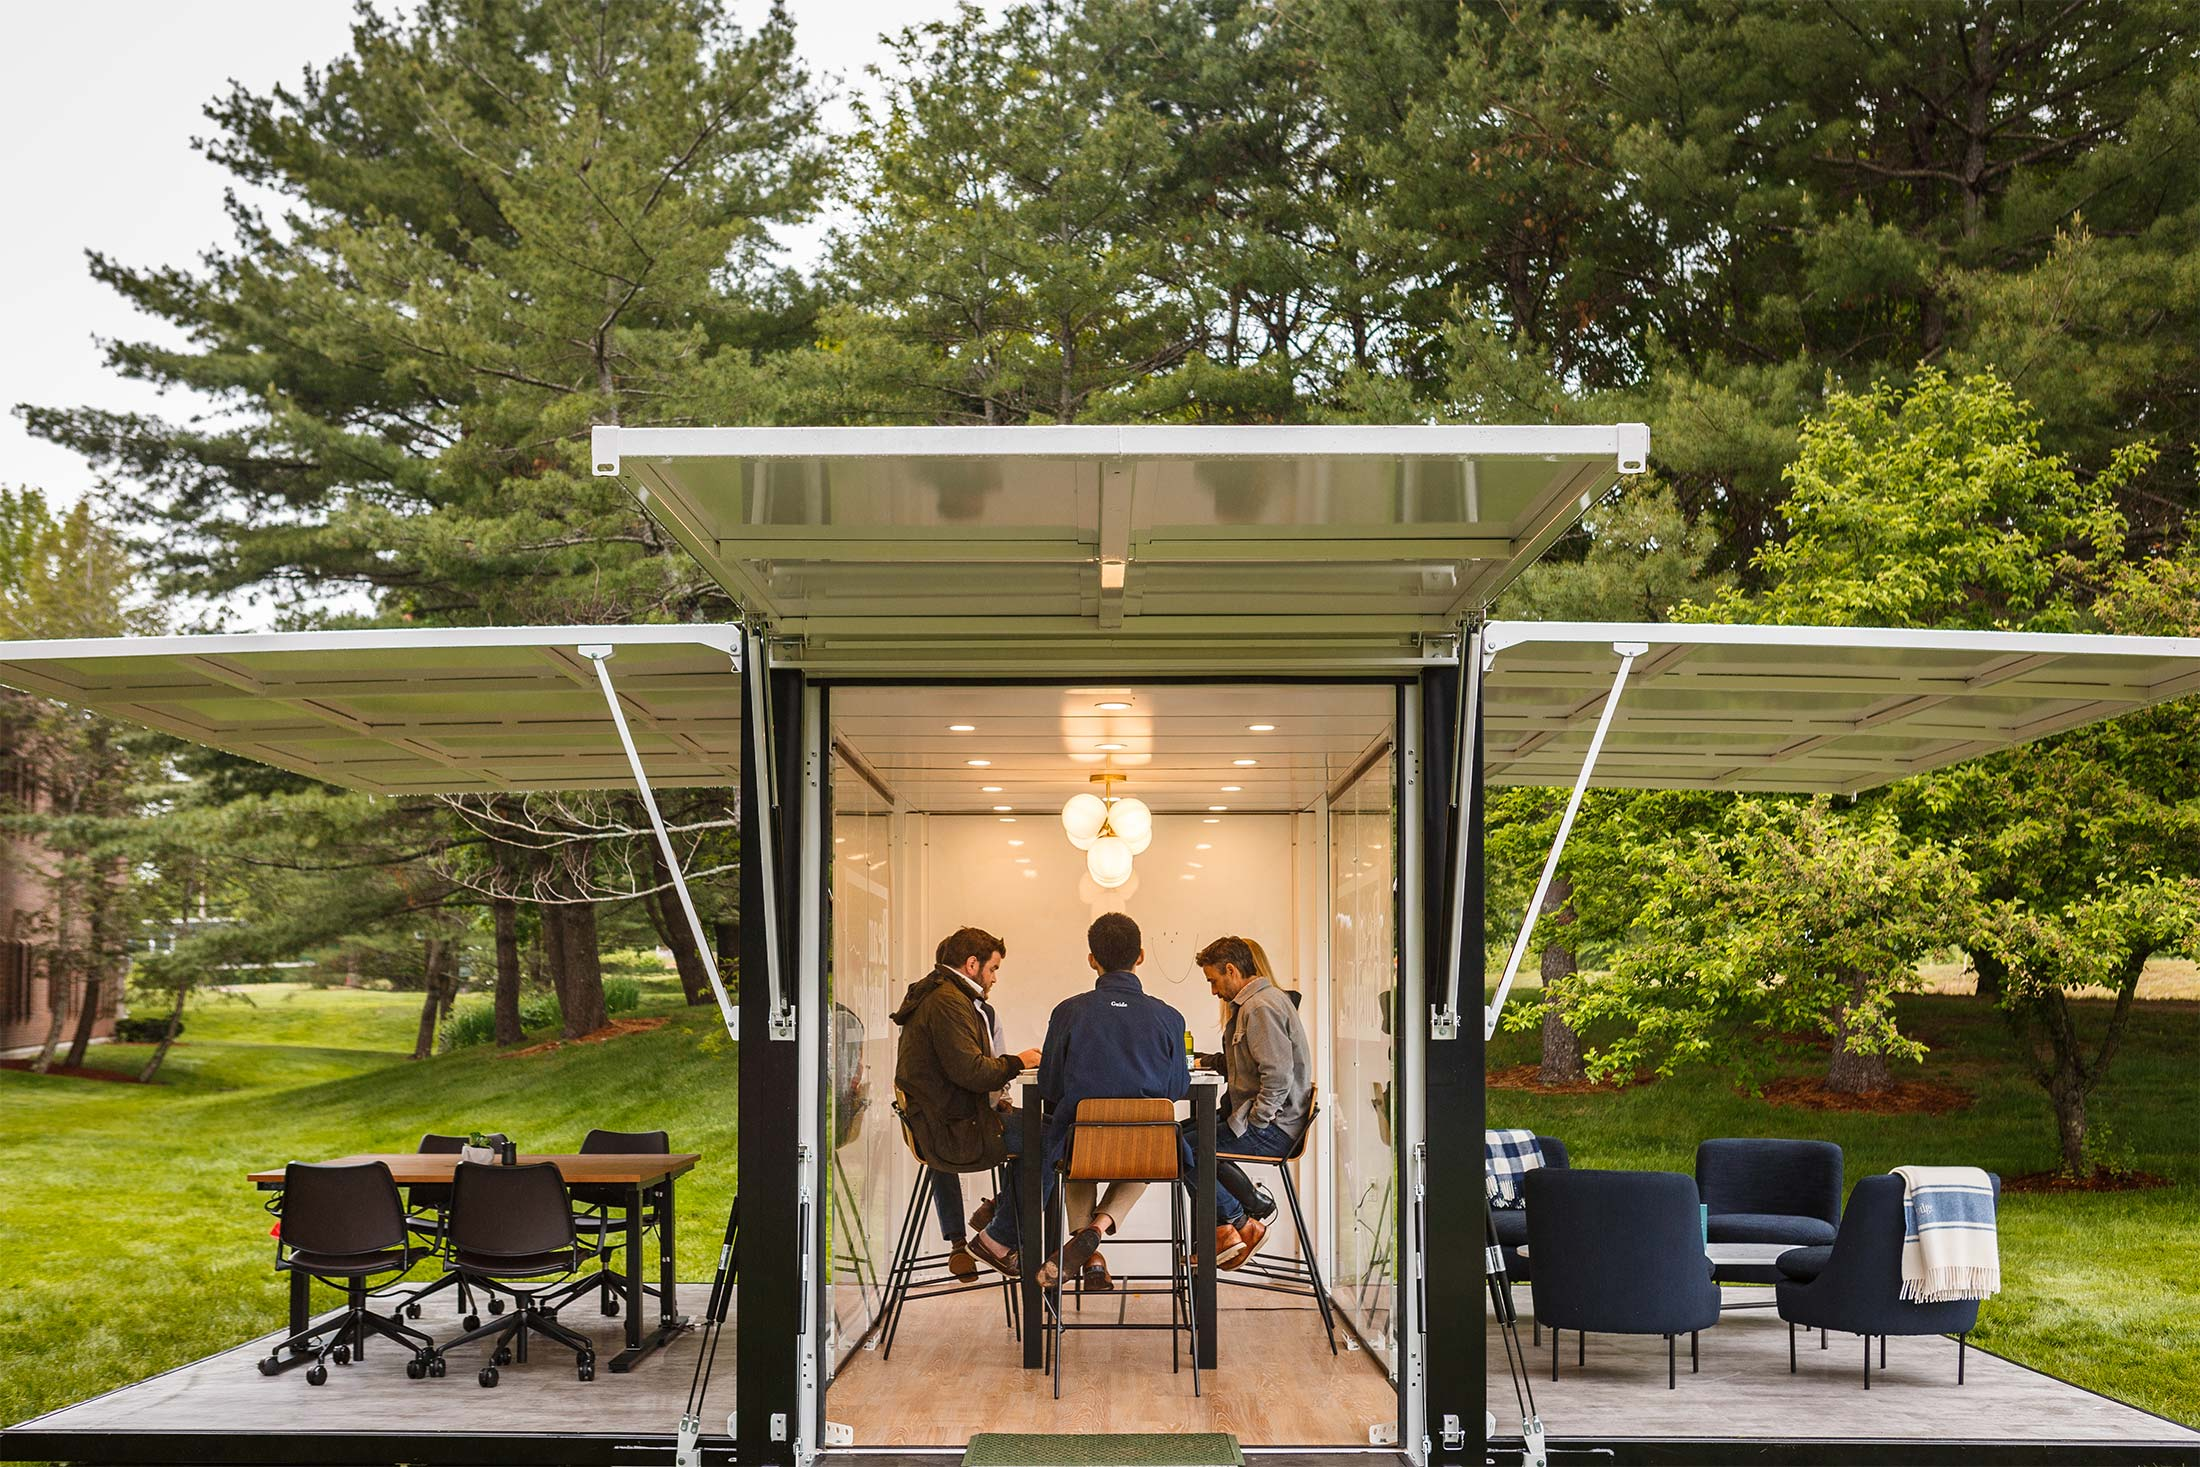 An indoor-outdoor working space amid some trees.